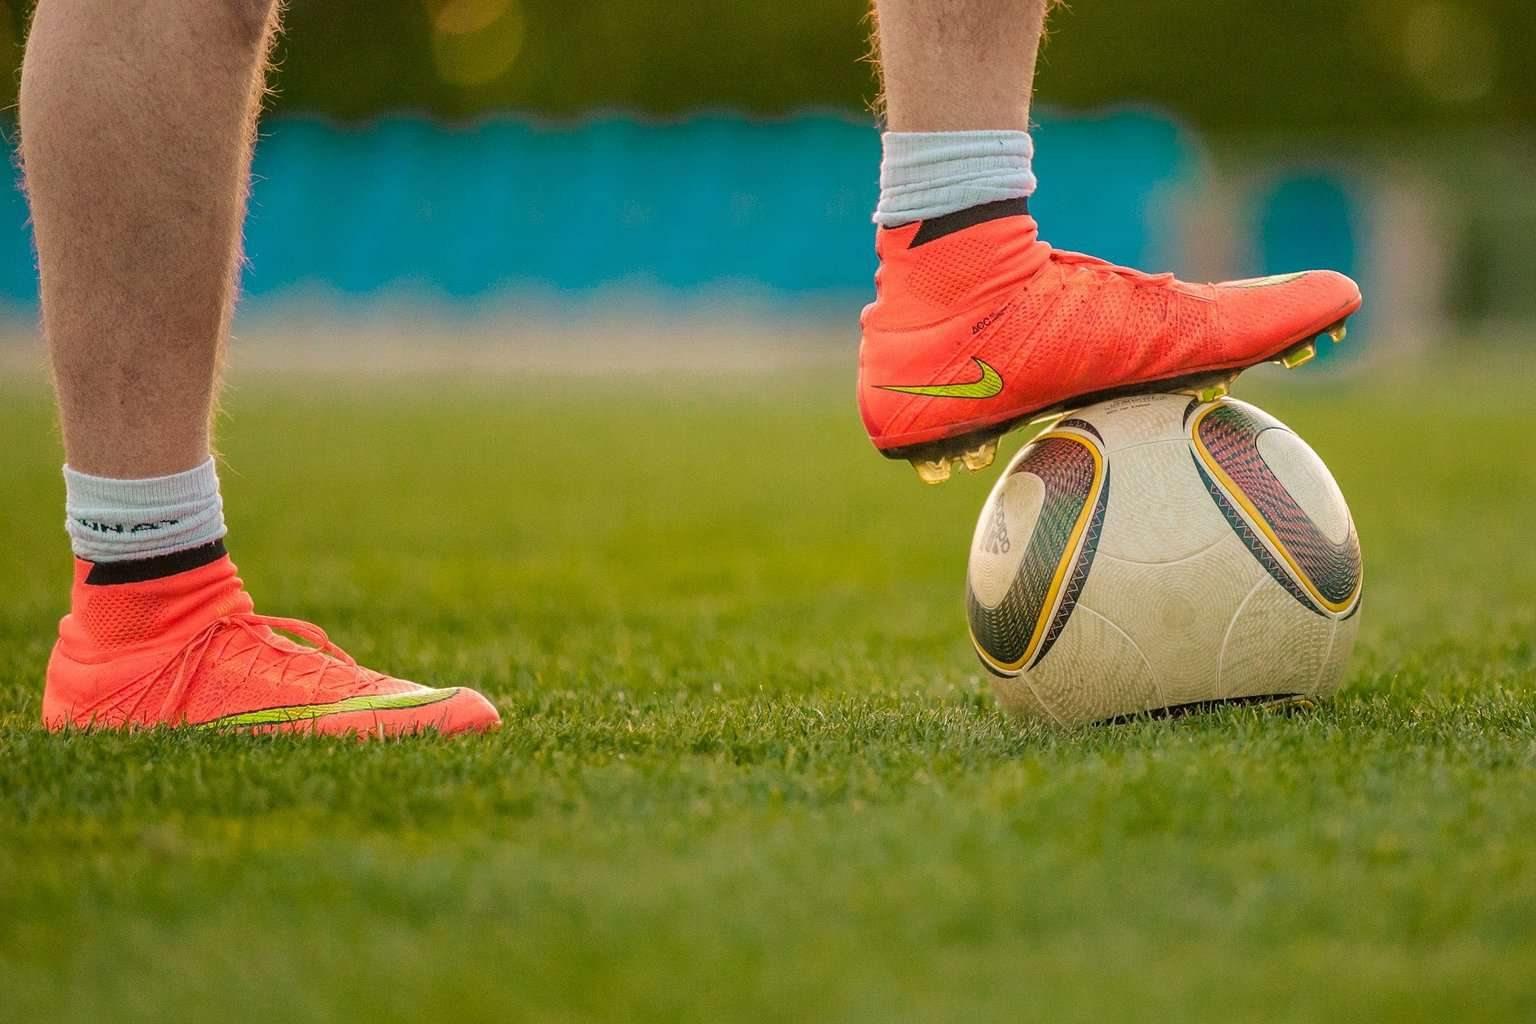 Close up of a person wearing orange soccer cleats with their foot placed on a soccer ball